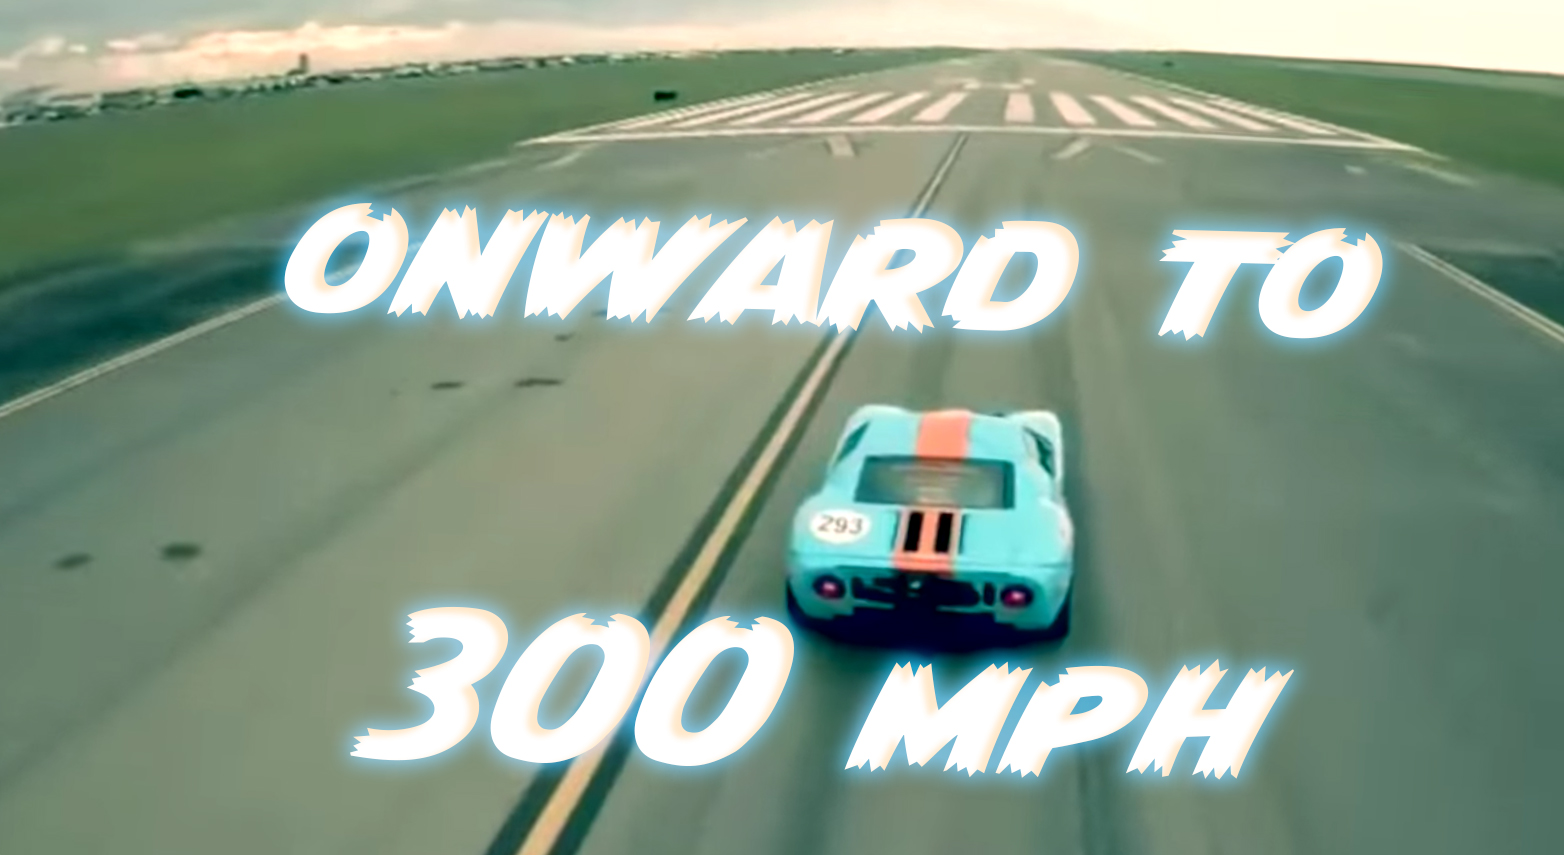 Ford GT goes 300 mph